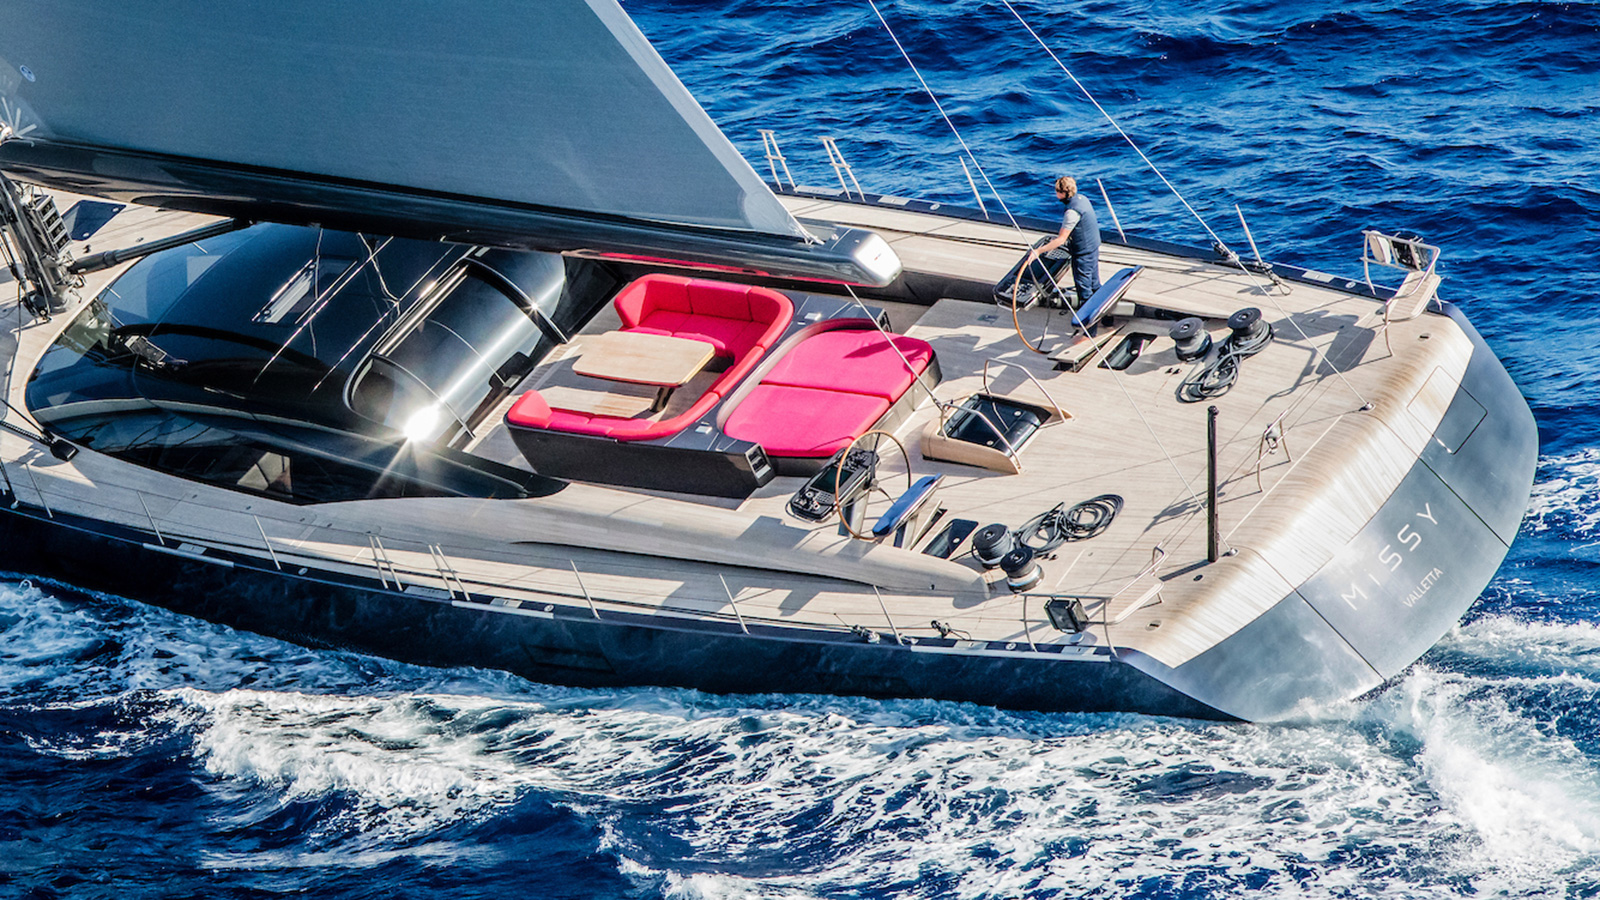 missy-by-vitters-is-one-of-the-yachts-that-makes-the-most-of-glass